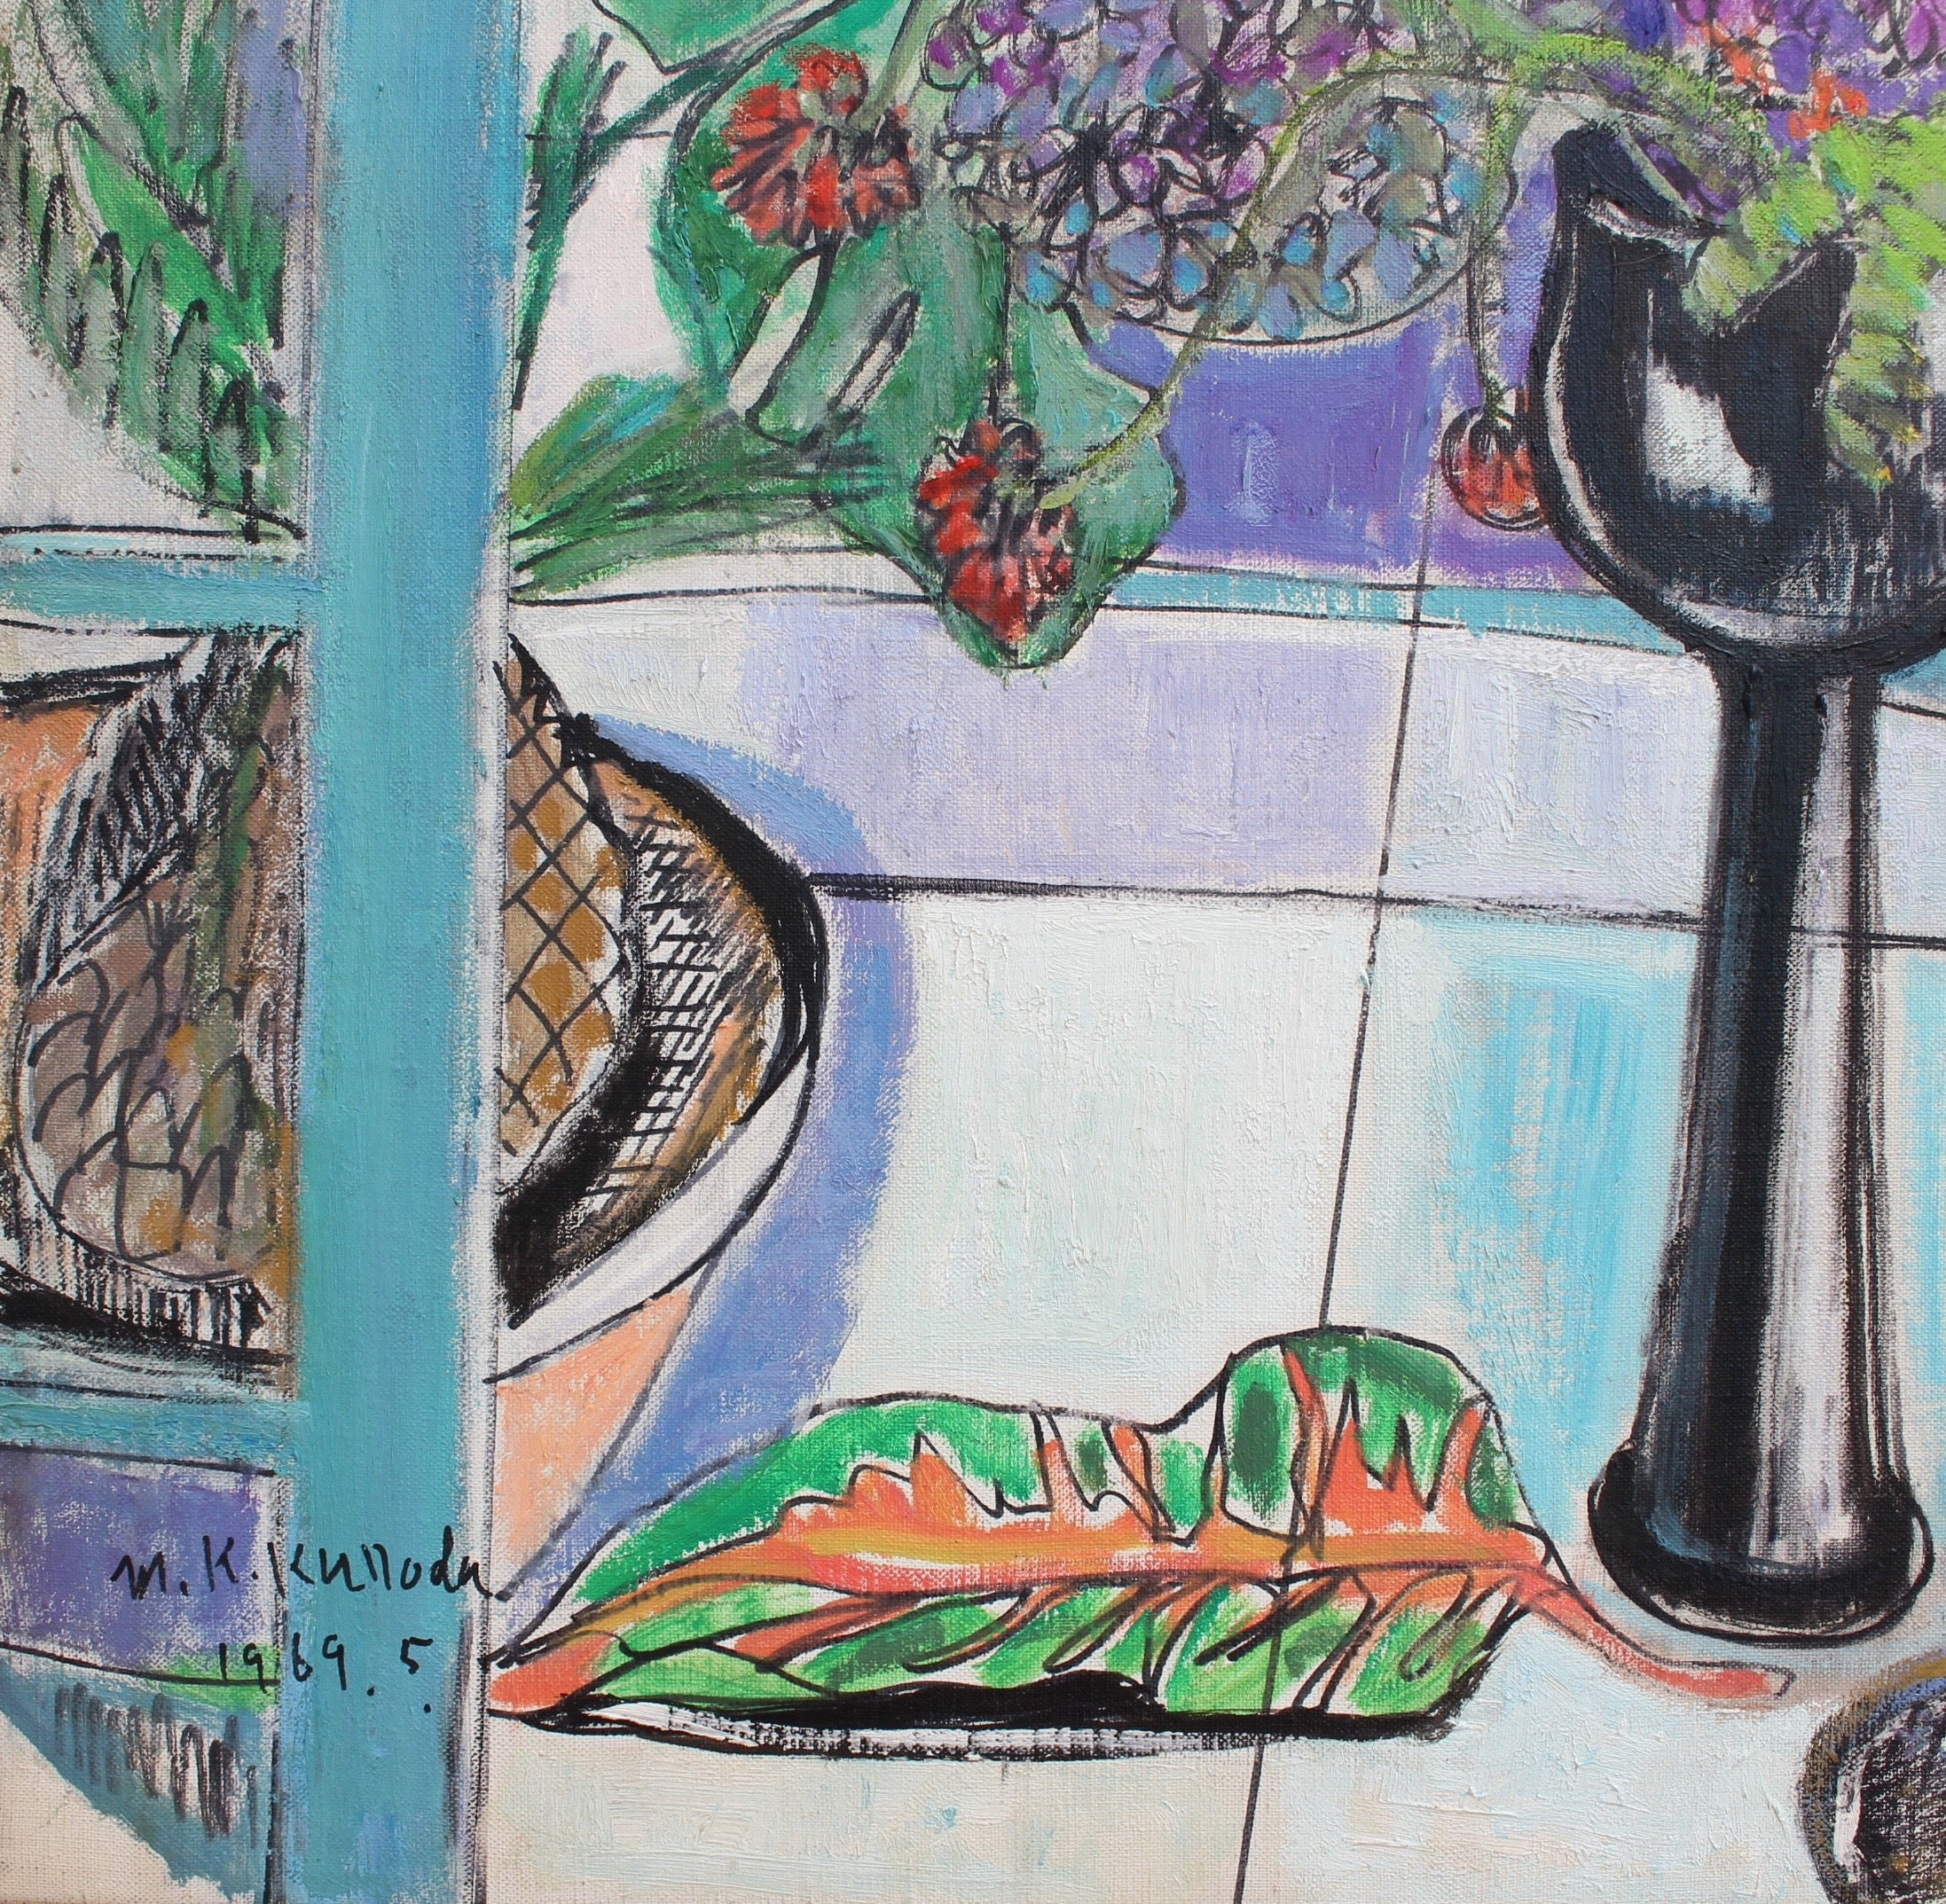 'Still Life with Bouquet and Carafe' by Kumiko Kuroda (1969)